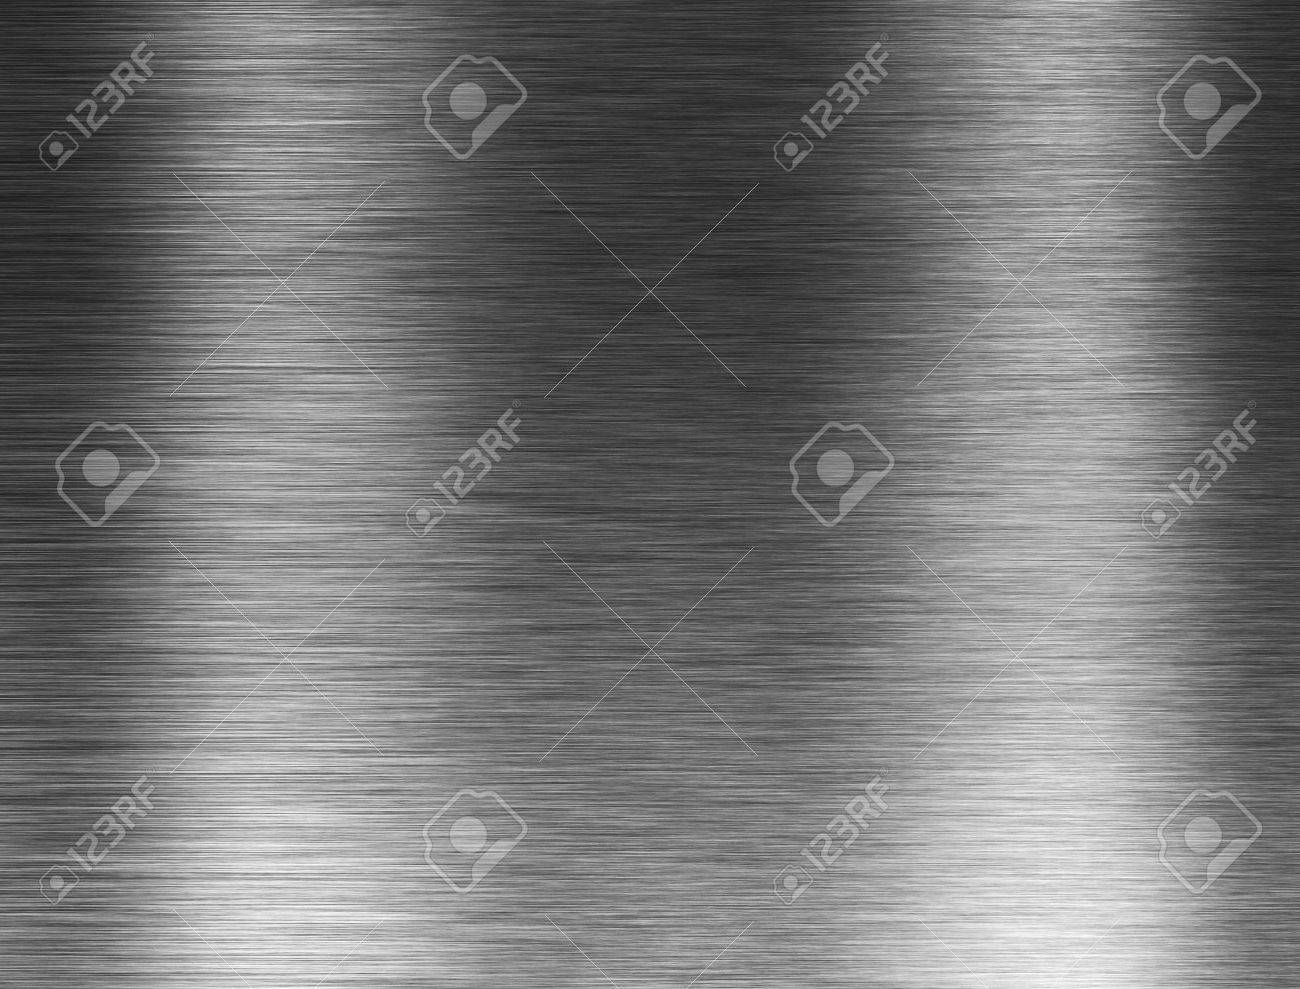 stainless steel Stock Photo - 6070432